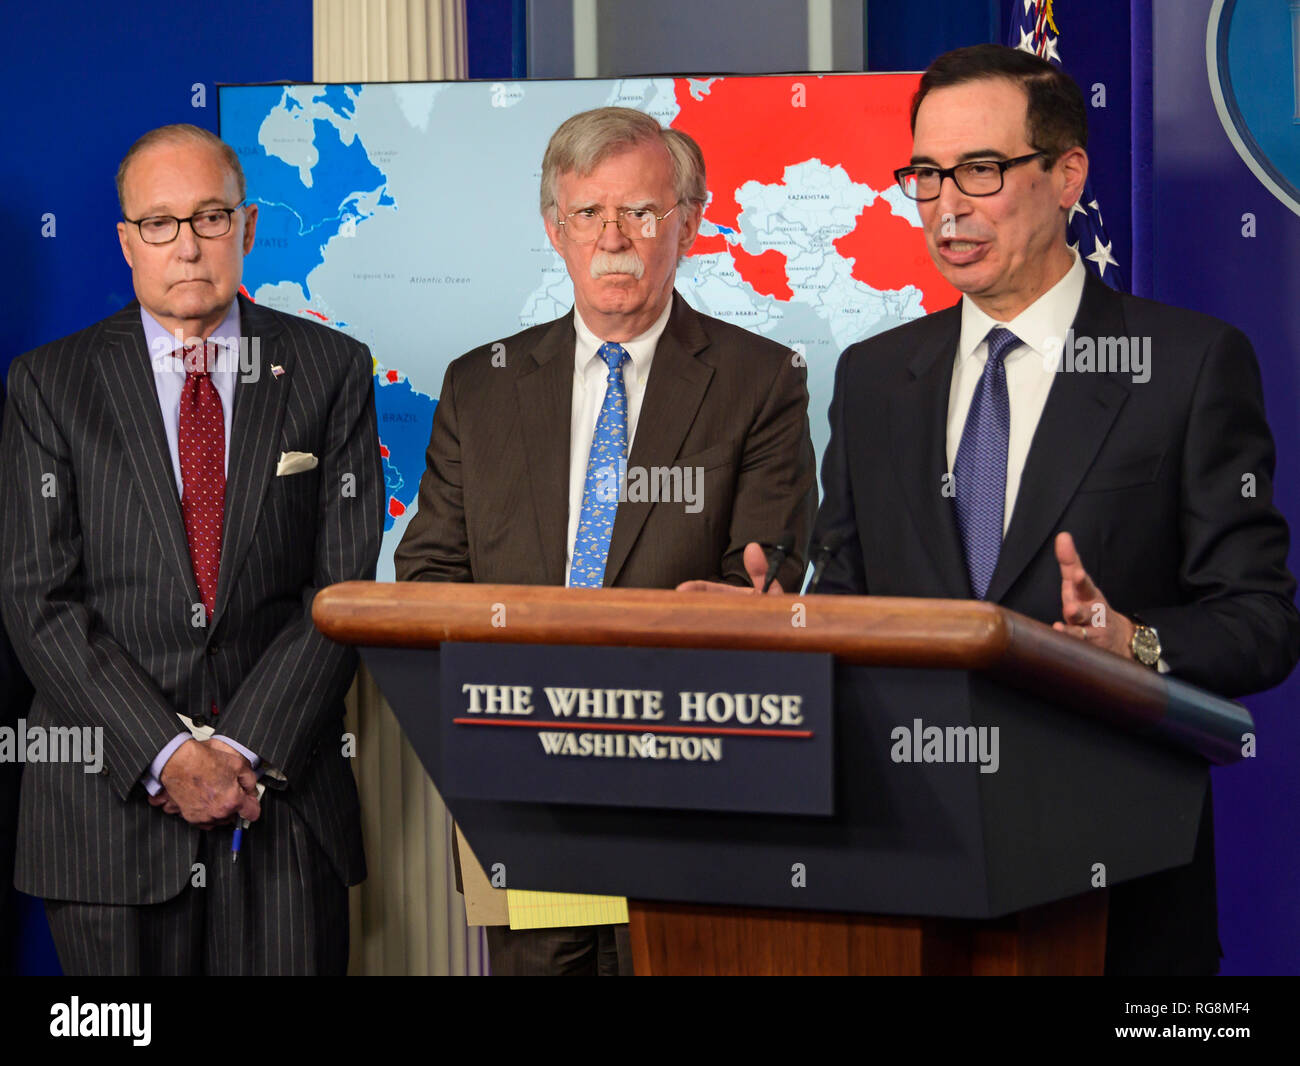 United States Secretary of the Treasury Steven T. Mnunchin, right, conducts a briefing with National Security Advisor John R. Bolton, center, in the Brady Press Briefing Room of the White House in Washington, DC on Monday, January 28, 2019. Bolton and Mnunchin announced that the administration had imposed sanctions on Petroleos De Venezuela S.A., the state-owned oil company of Venezuela, a move aimed to increase the pressure on President Nicolas Maduro to cede power to Juan Guaido. Looking on from left is Director of the National Economic Council Larry Kudlow. Credit: Ron Sachs/CNP /MediaP - Stock Image